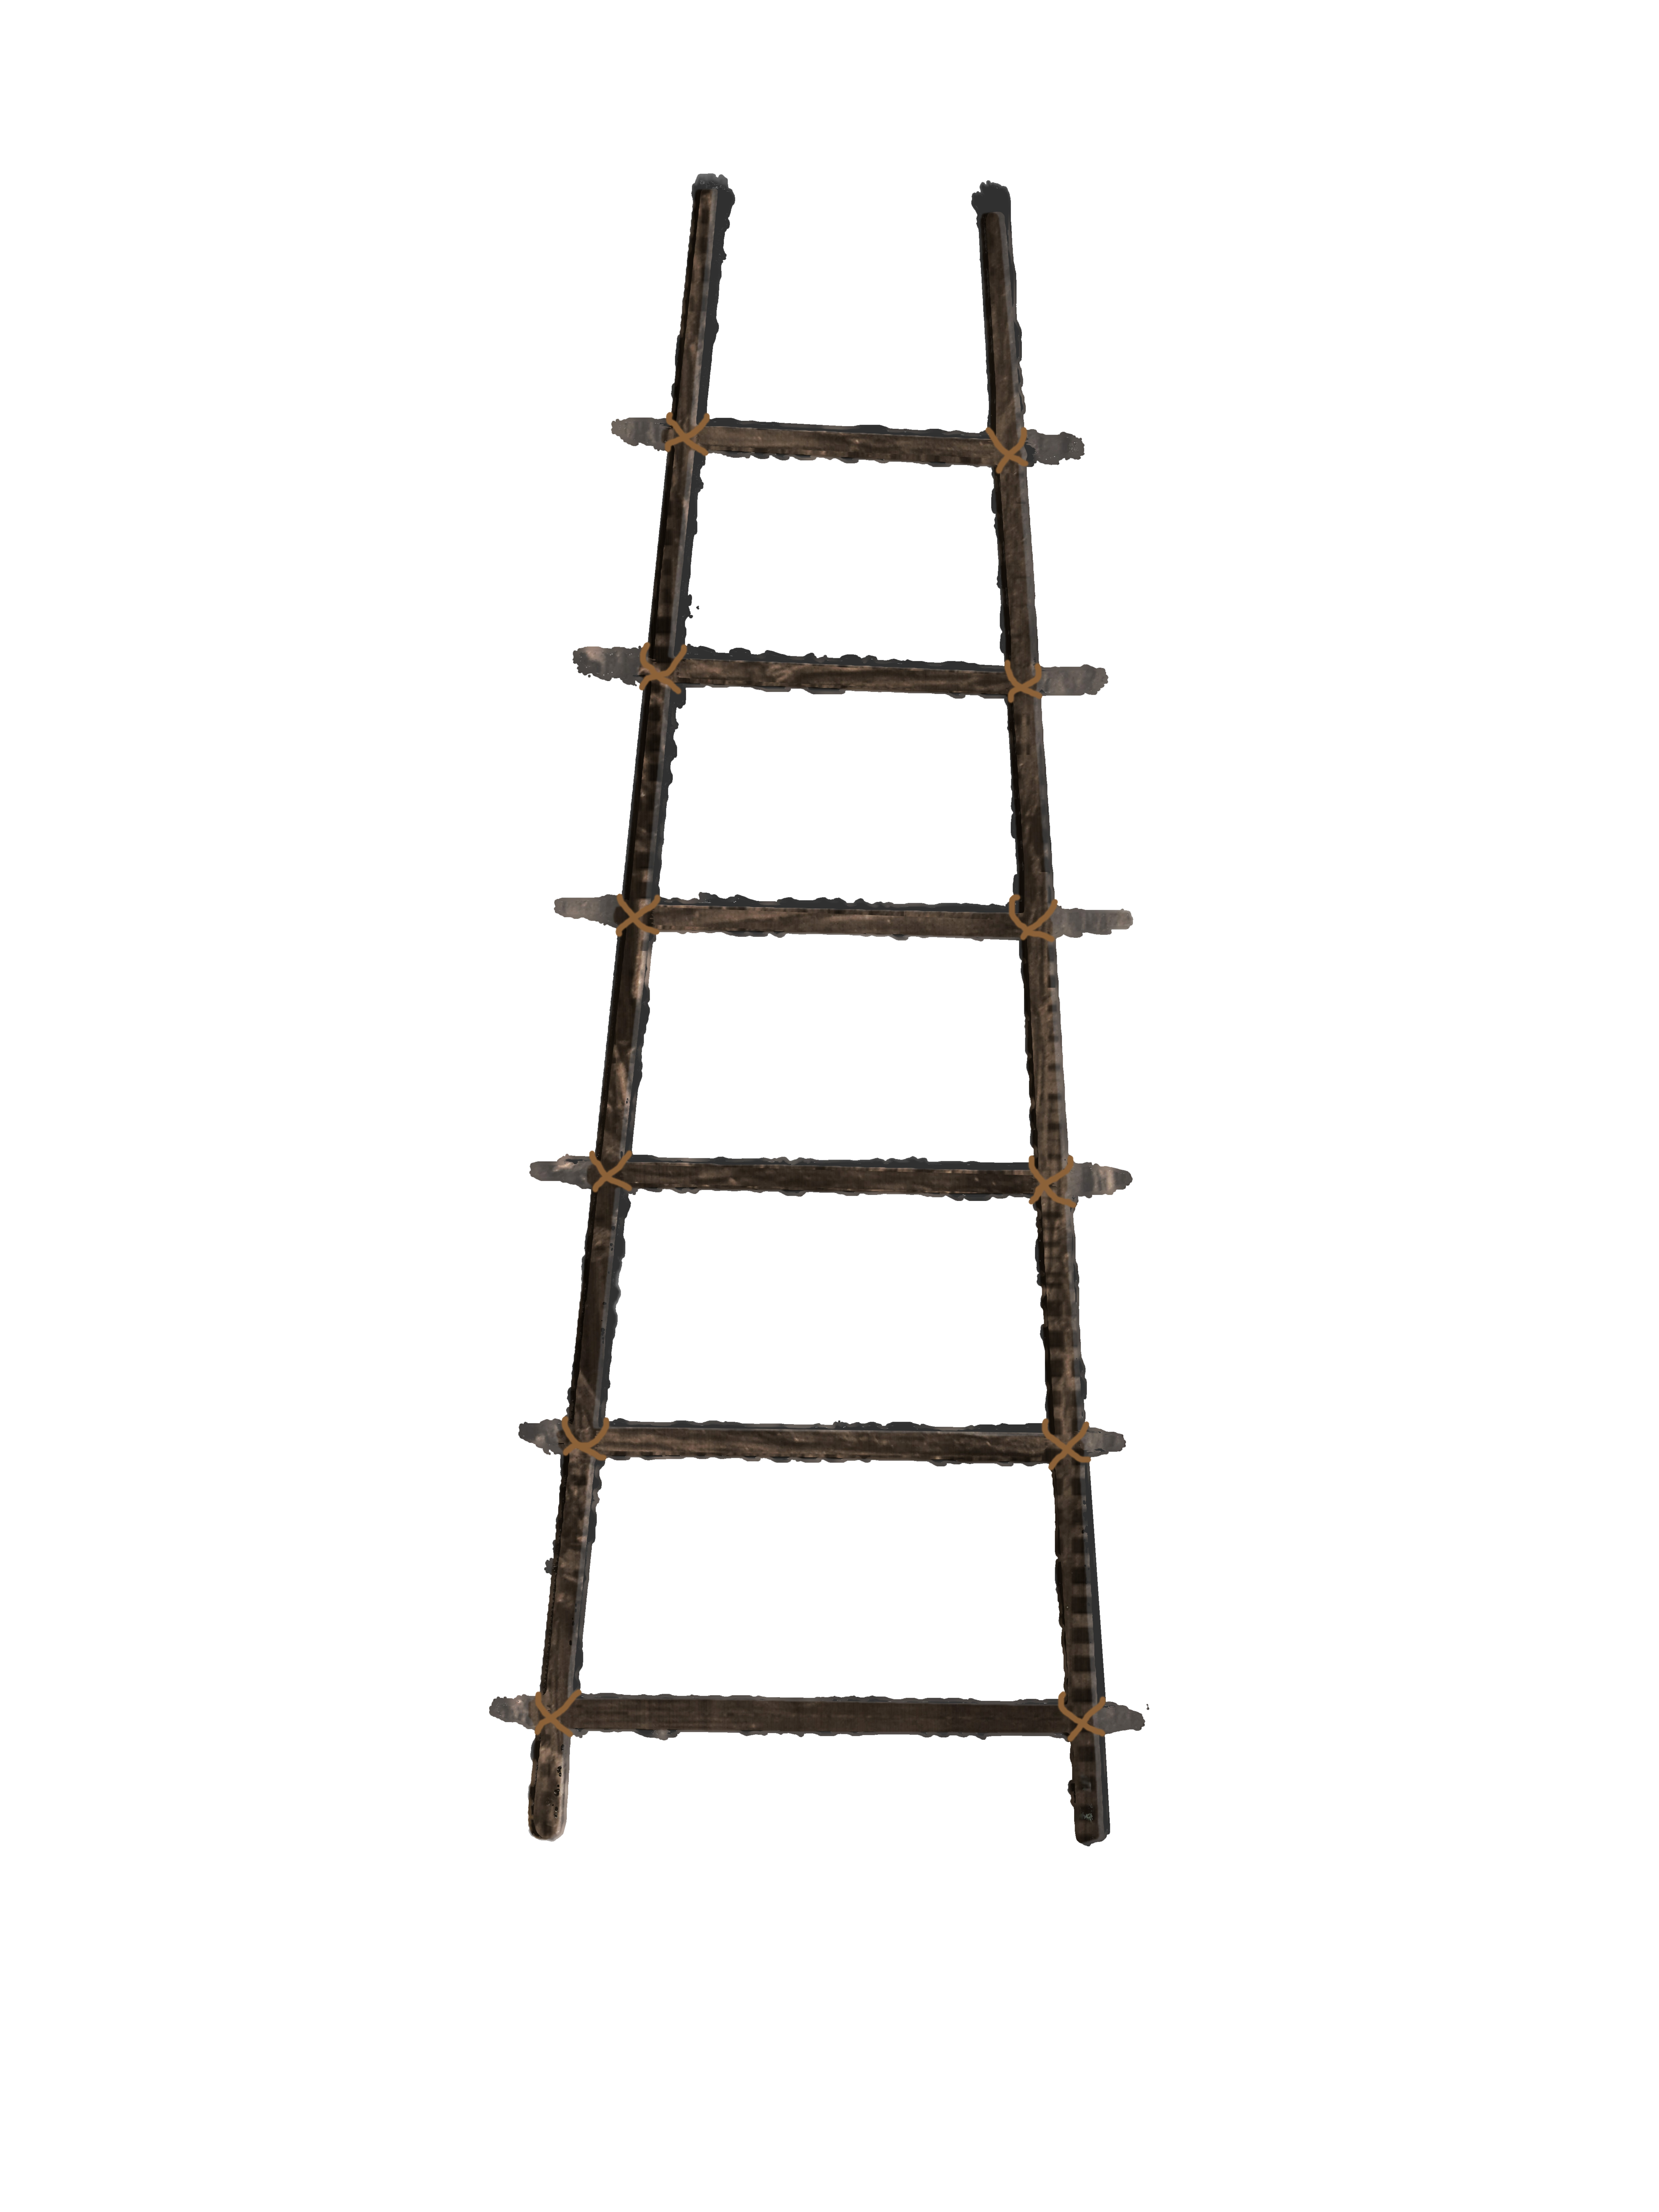 Ladder clipart tall ladder. Wooden with elegant gallery